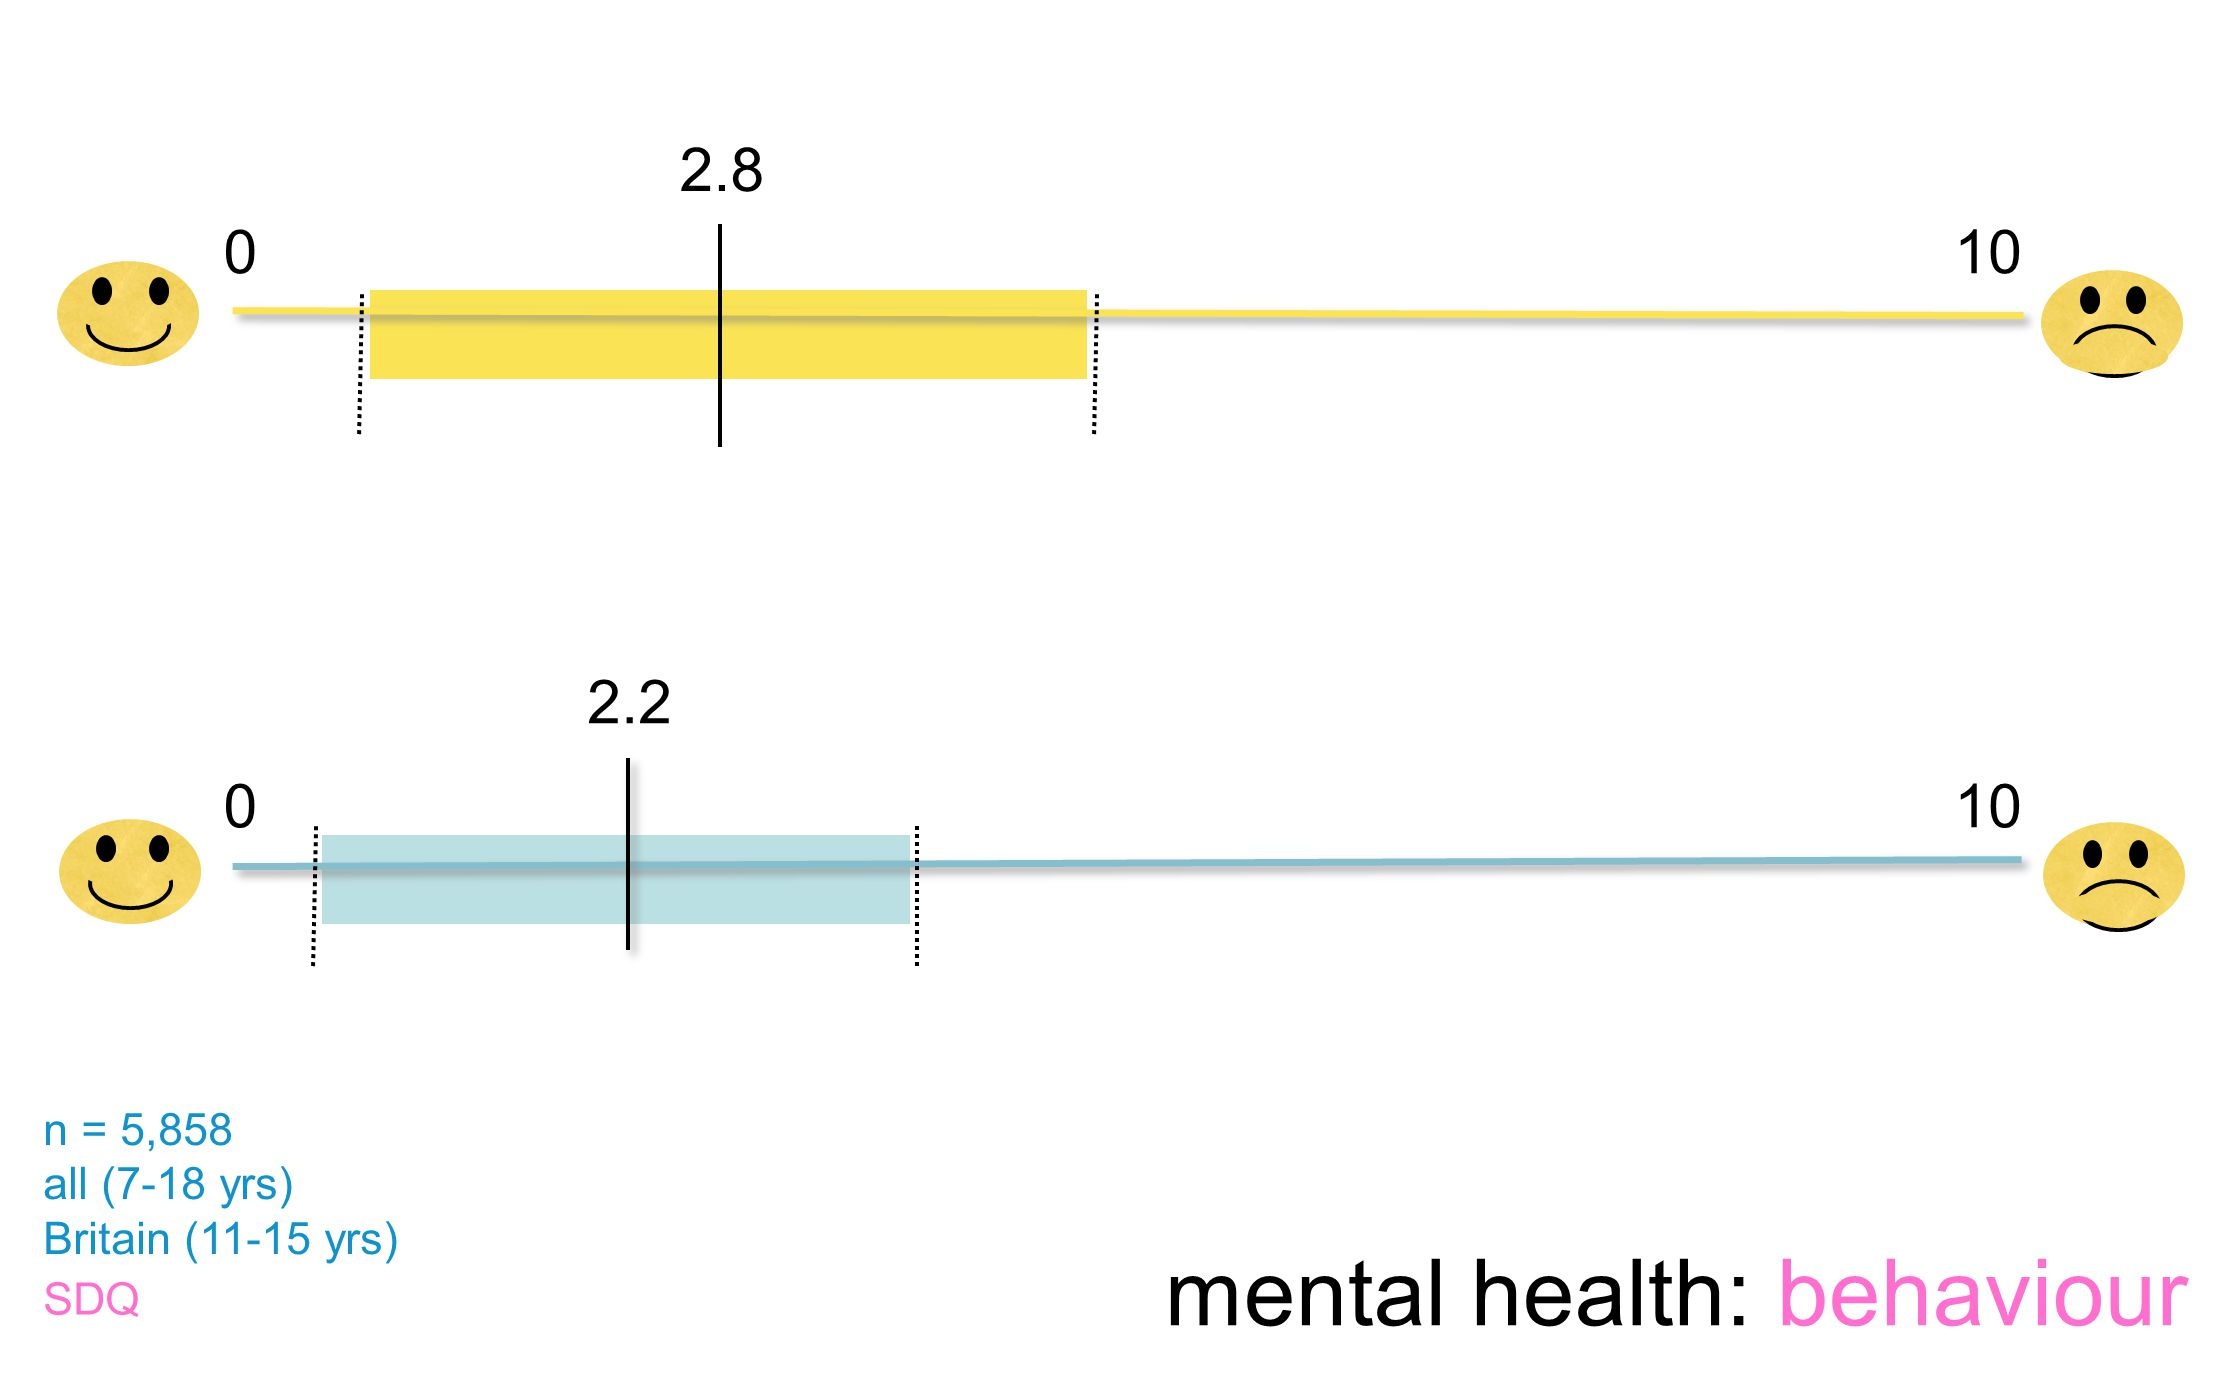 0.74.9 2.8 2.2 0 0 10 0.5 3.9 n = 5,858 all (7-18 yrs) Britain (11-15 yrs) SDQ mental health: behaviour